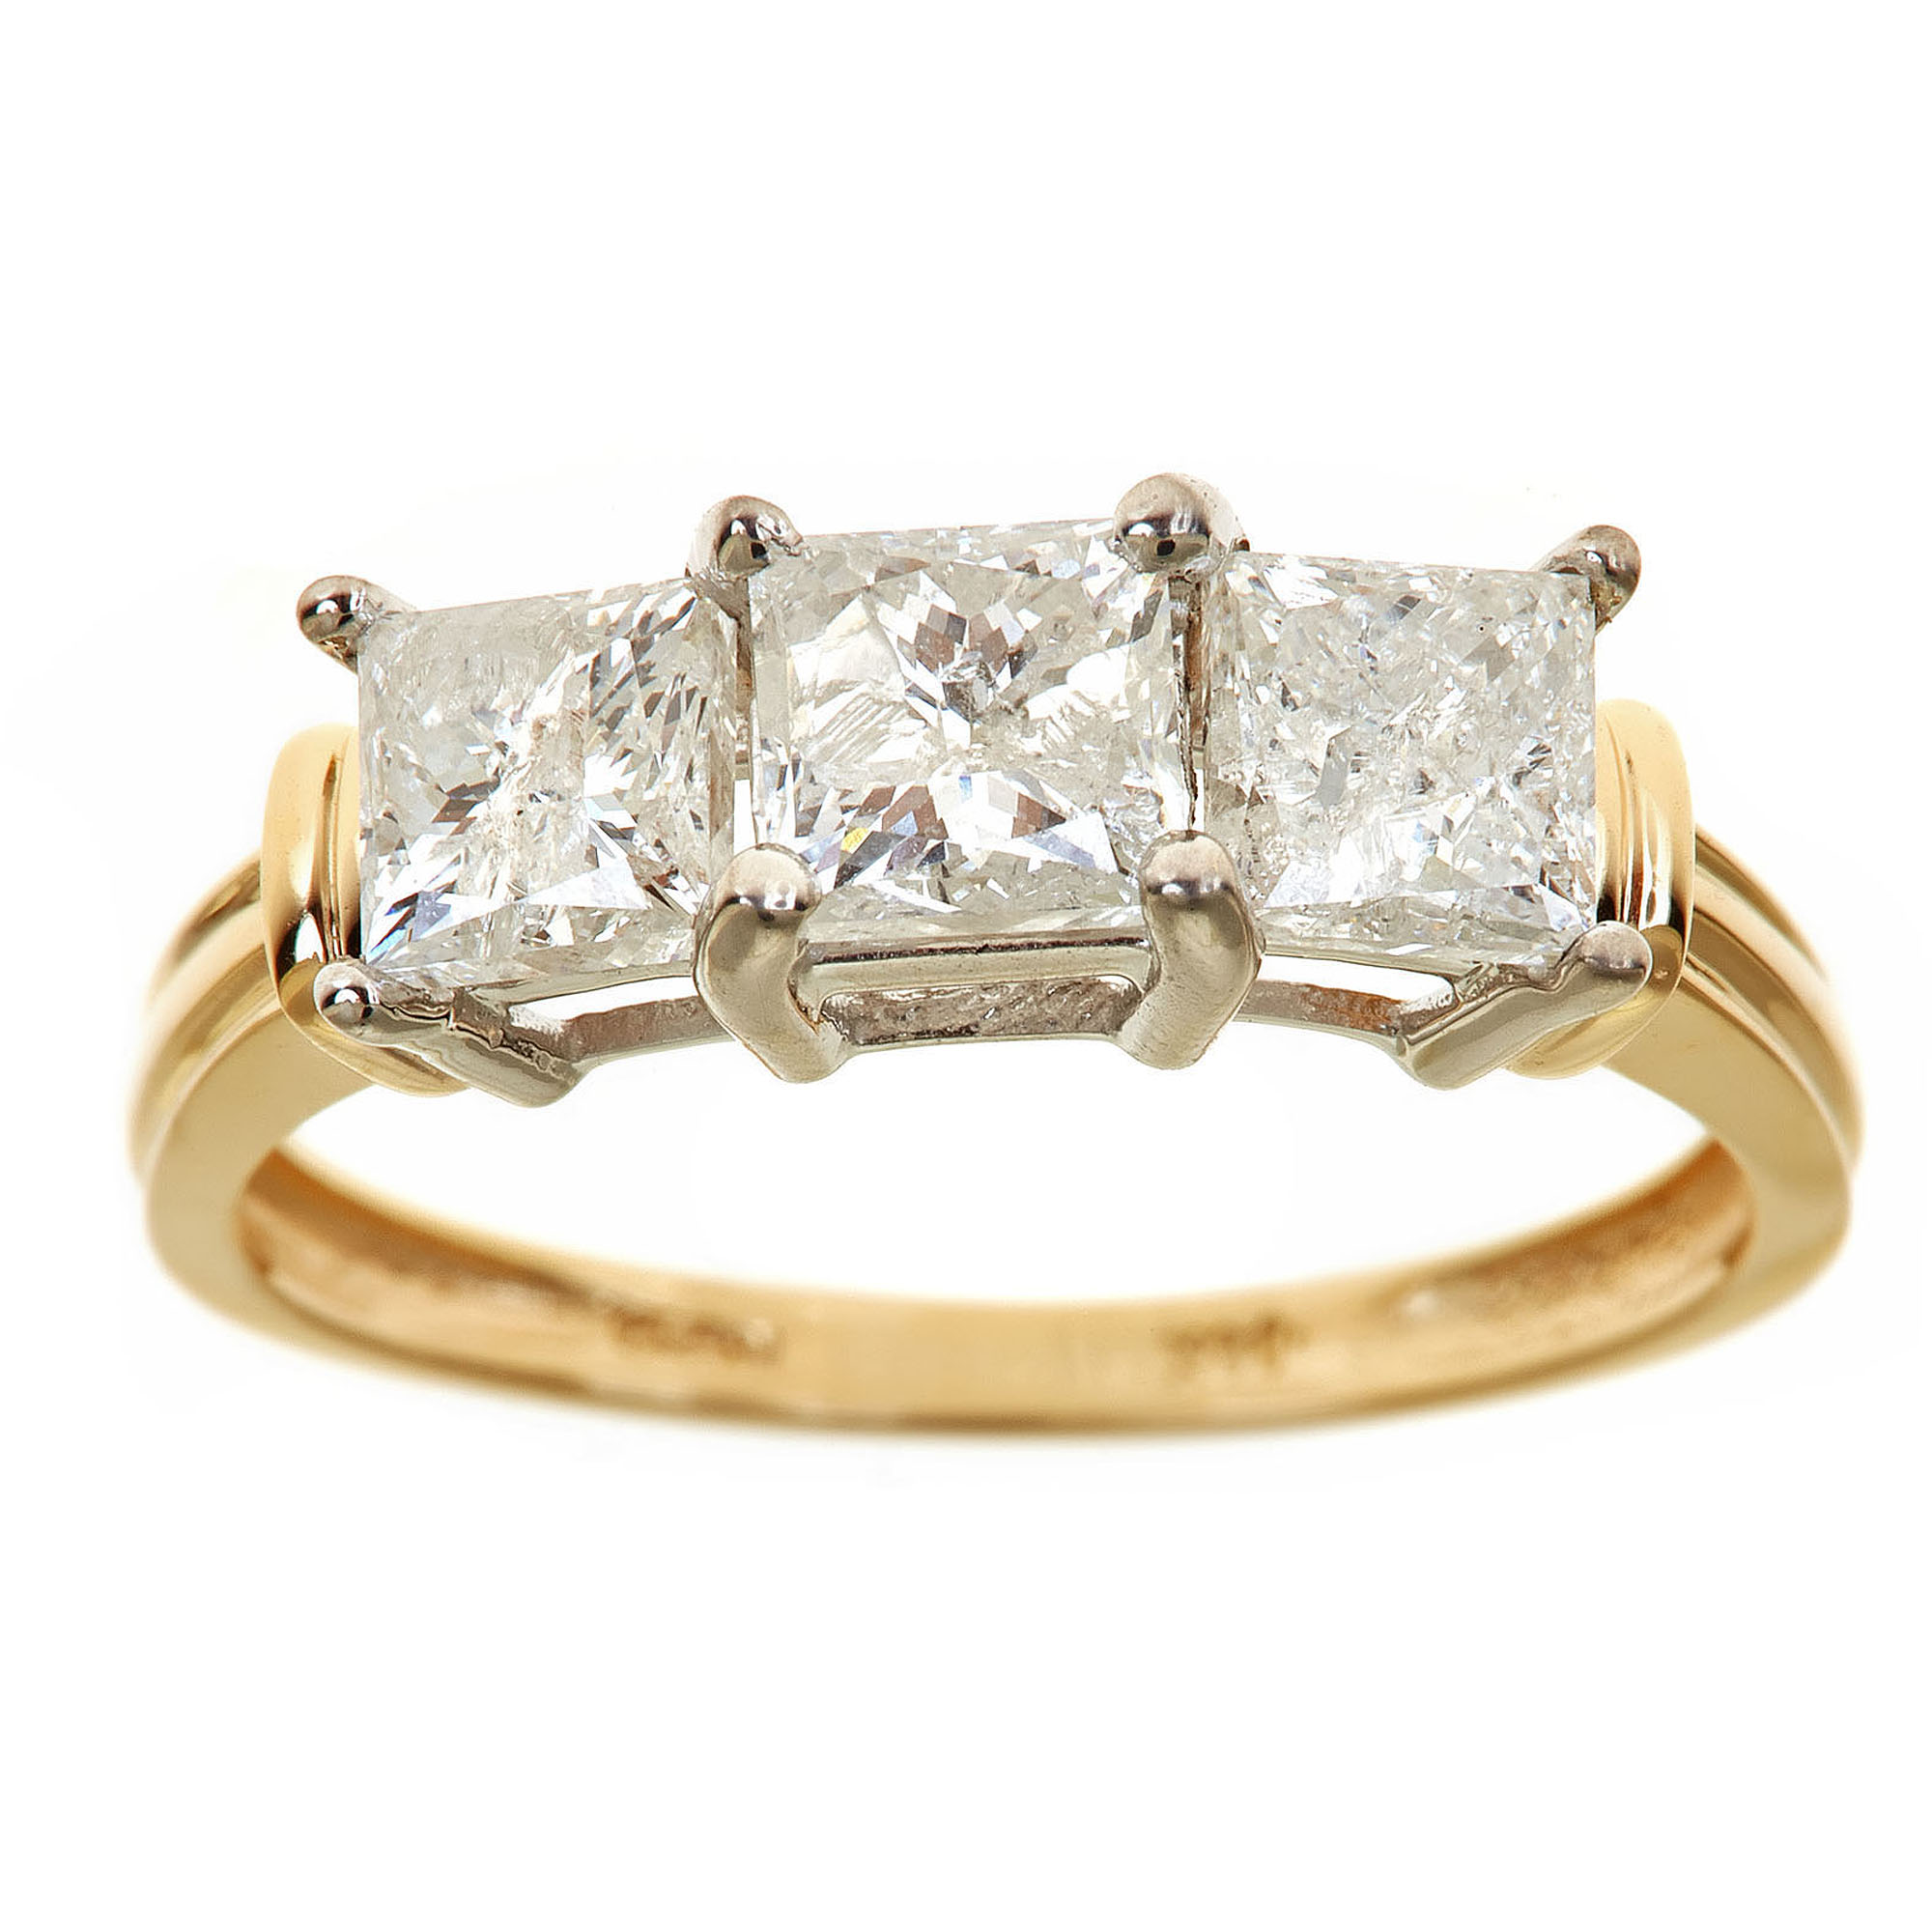 2 Carat T.W. Princess White Diamond 14kt Yellow Gold 3-Stone Ring, IGL certified